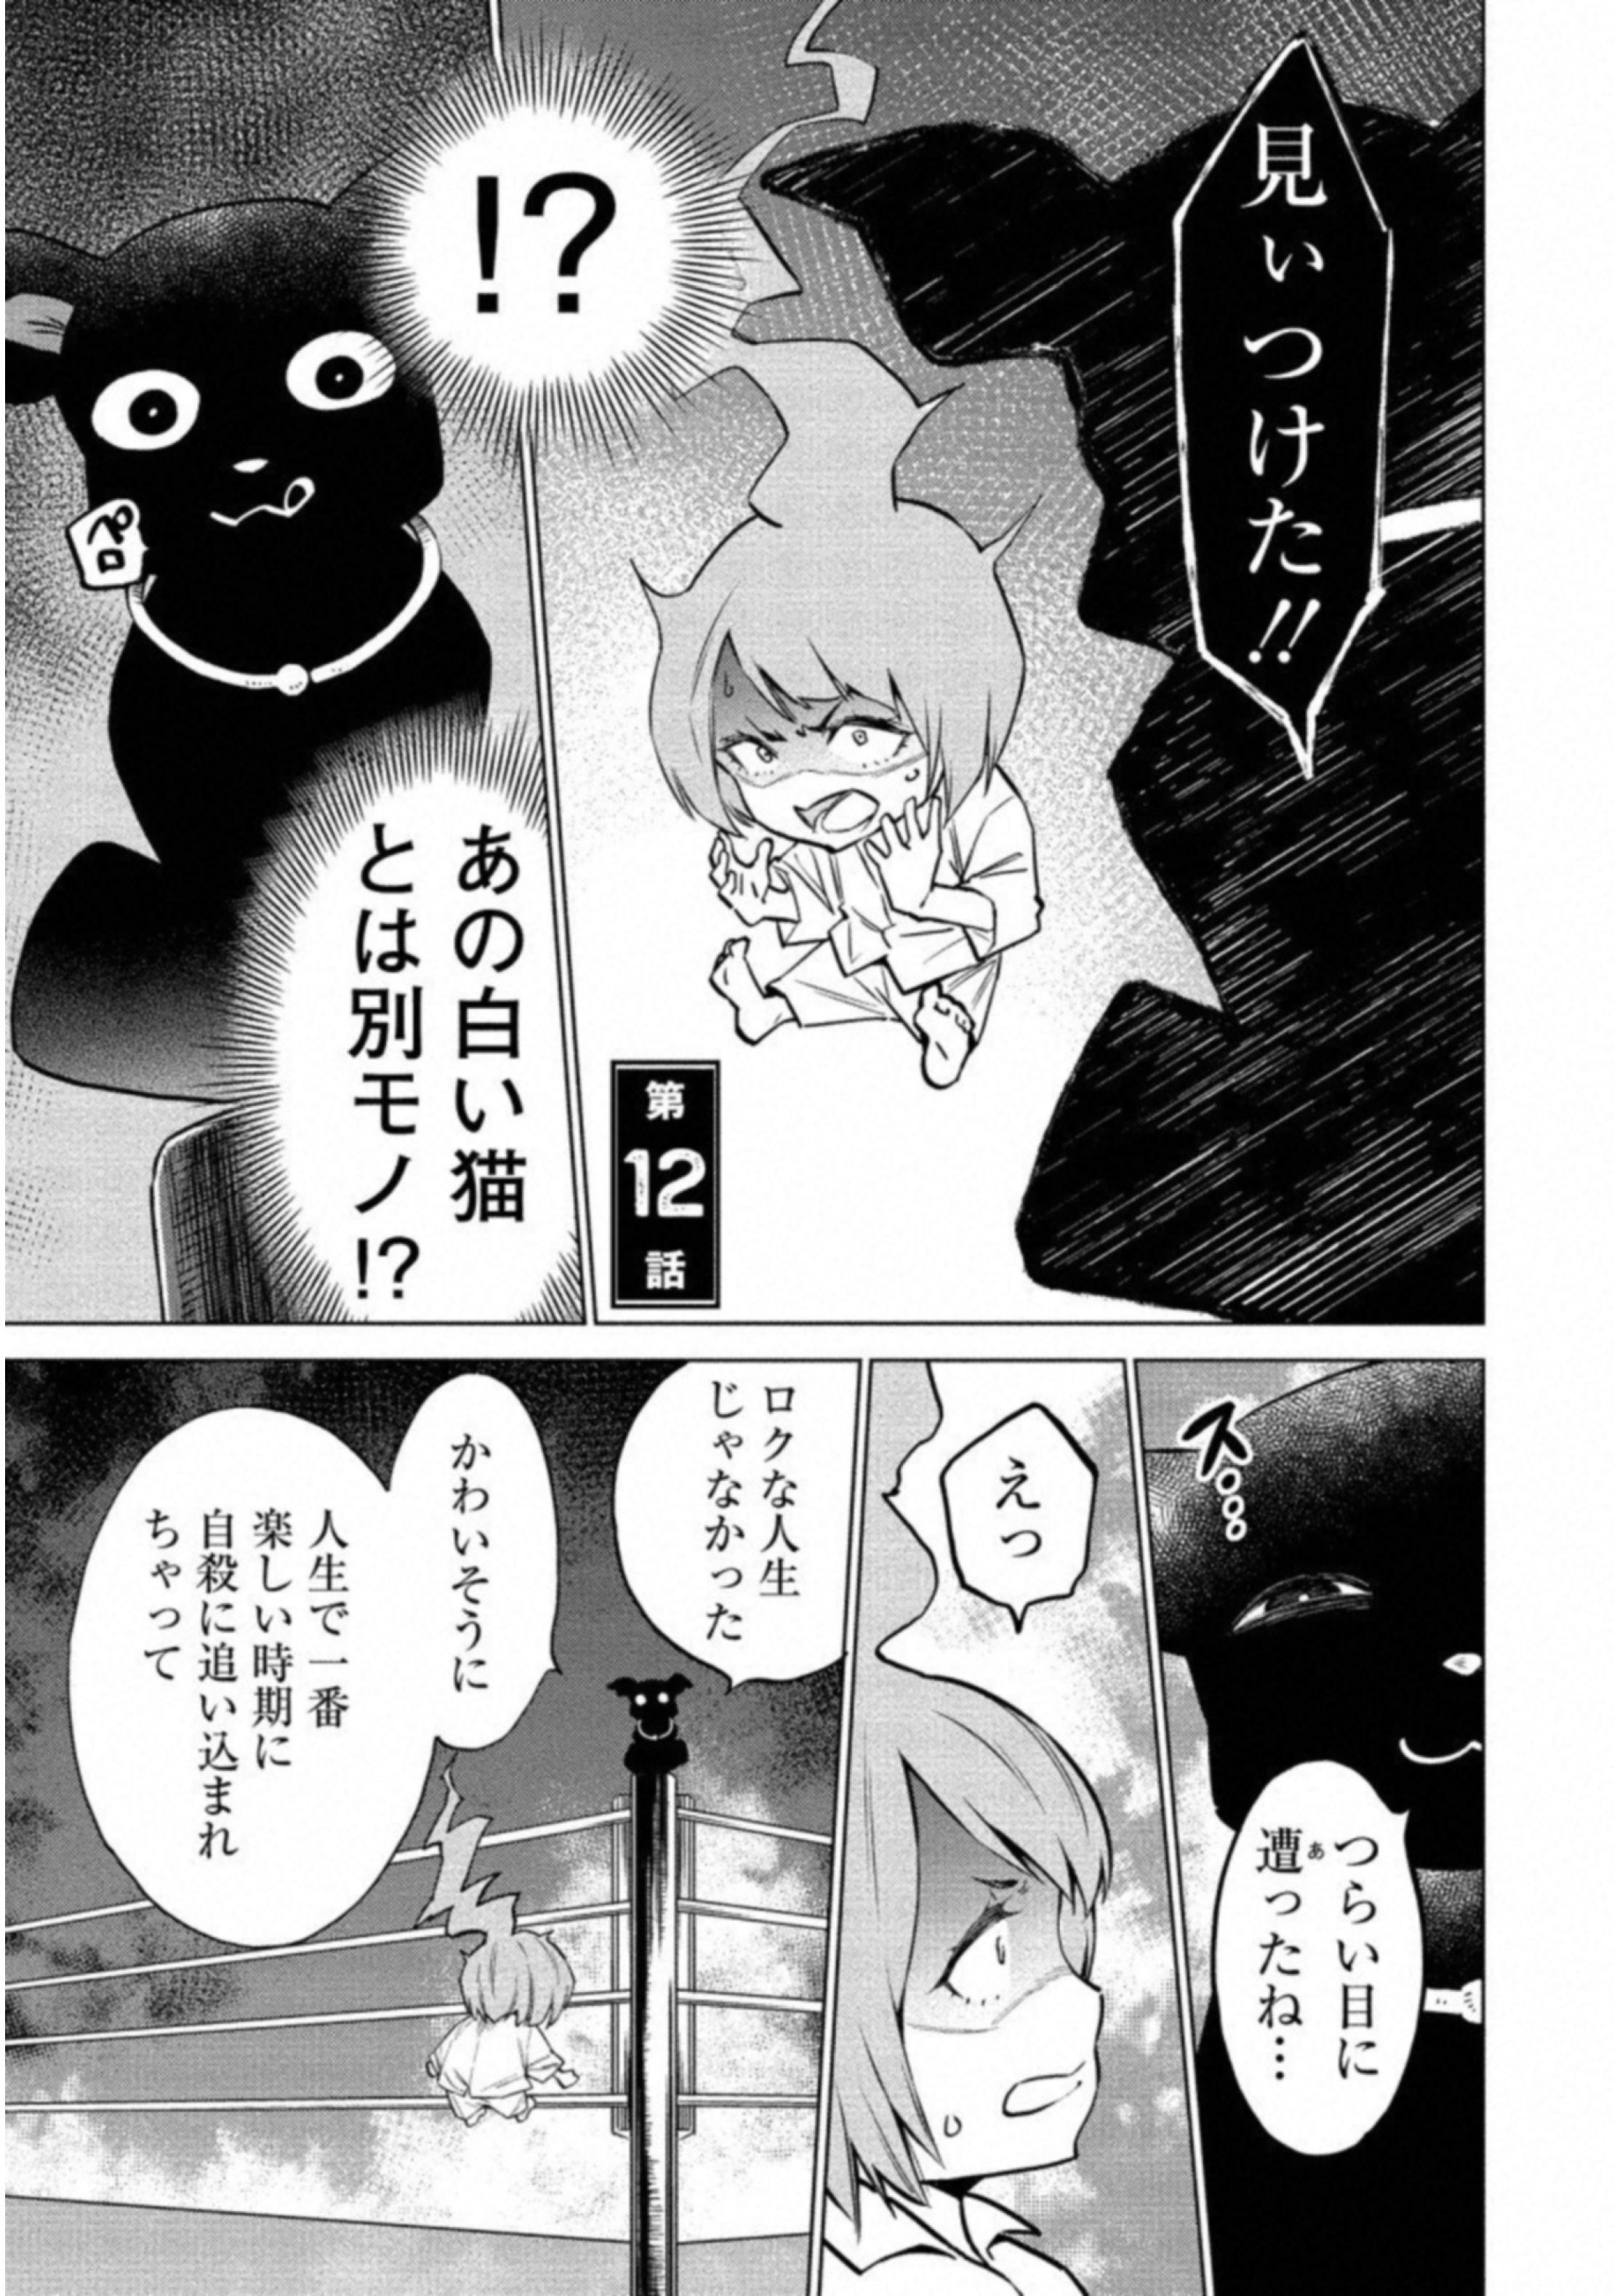 Manga Raw Dolkara Chapter 12